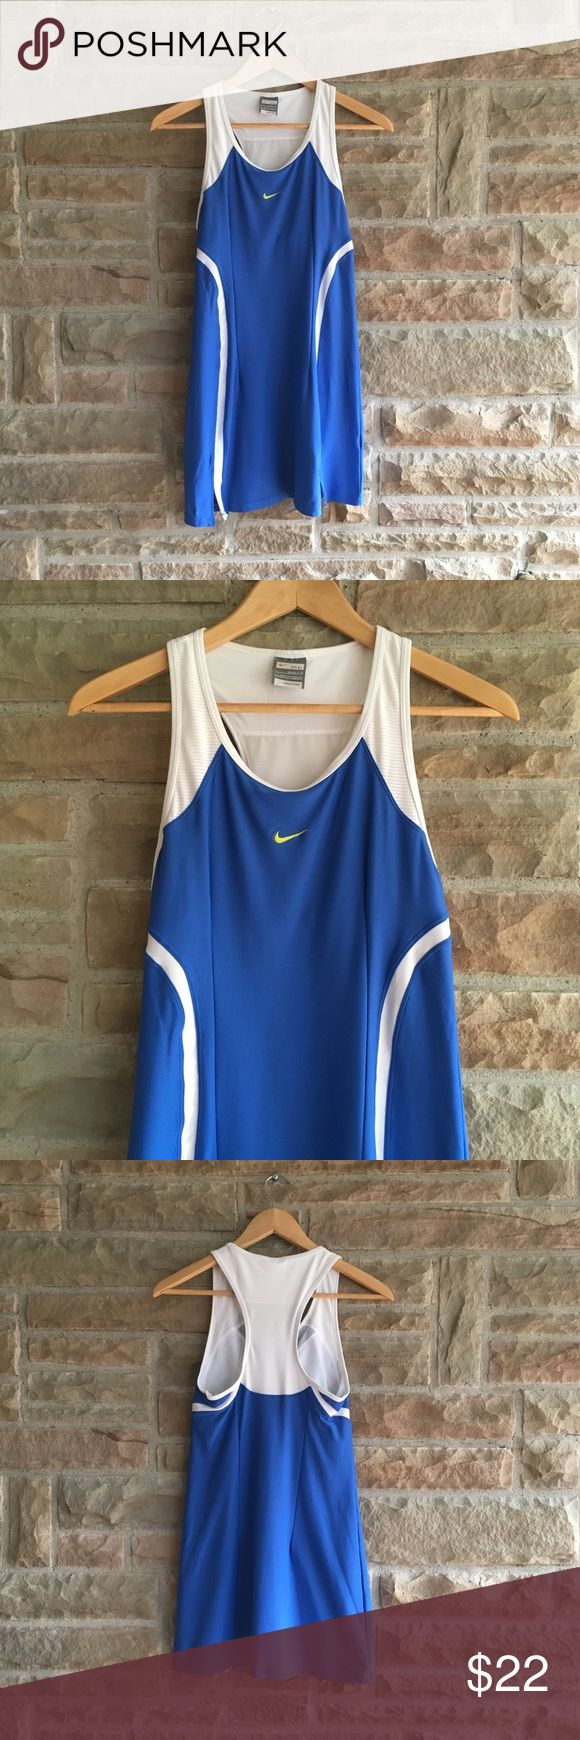 """Nike Dri-Fit Tennis Athletic Dress Blue & White S Nike Dri-Fit tennis/athletic dress. Size S 4-6. Super stretchy with a built in bra. Blue & white. Excellent condition except for two small lighter colored marks on the back of the dress (reflected in price). See 4th picture.  Approximate measurements: bust-27"""", length-30"""" Nike Dresses Mini"""